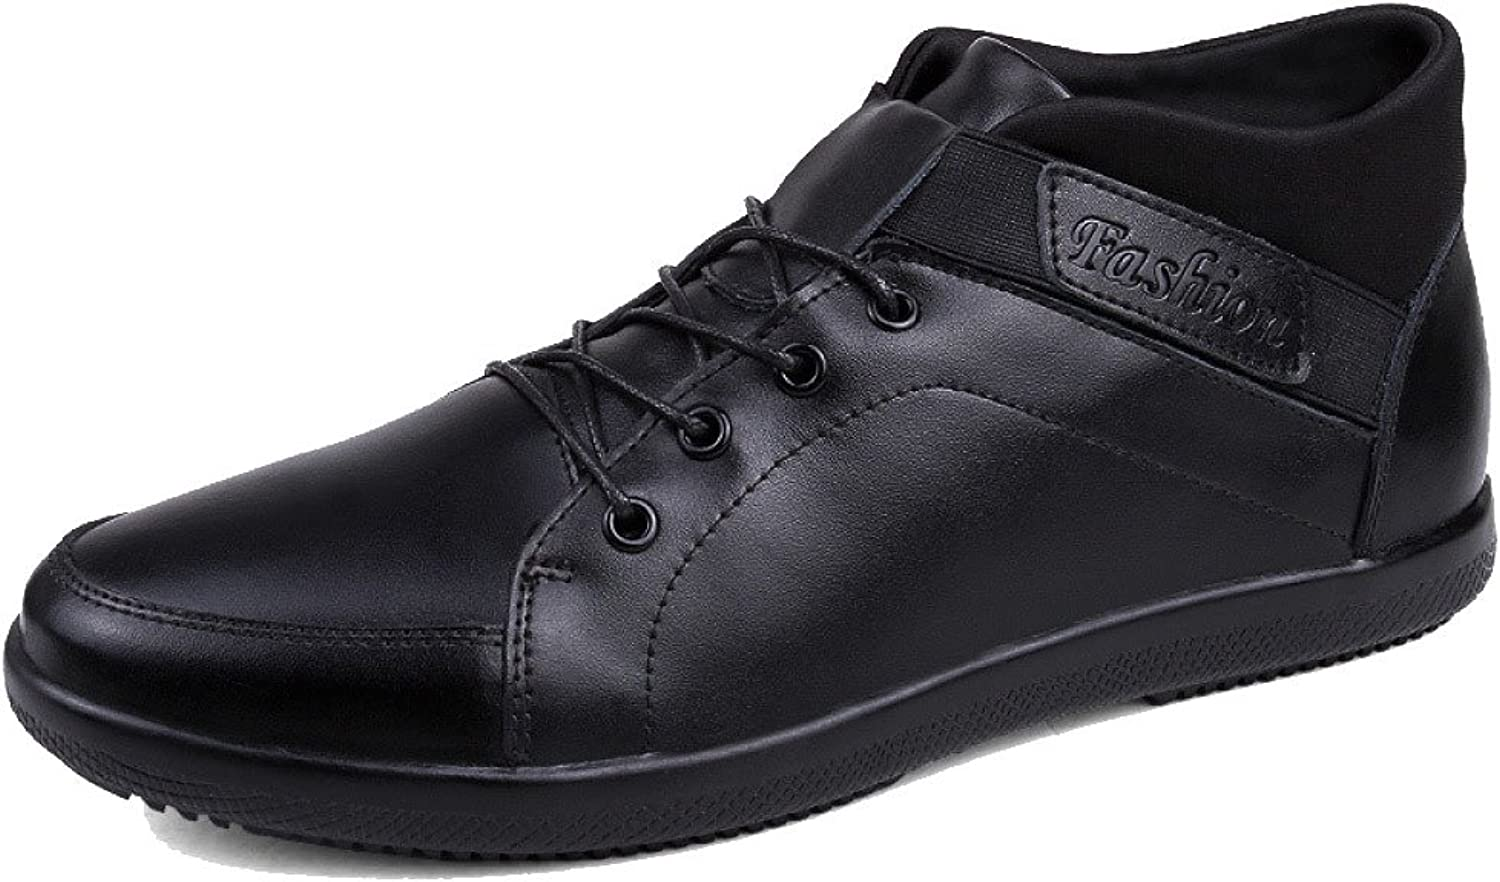 DHFUD Men's Spring Fashion Casual Sports Outdoor Leather shoes